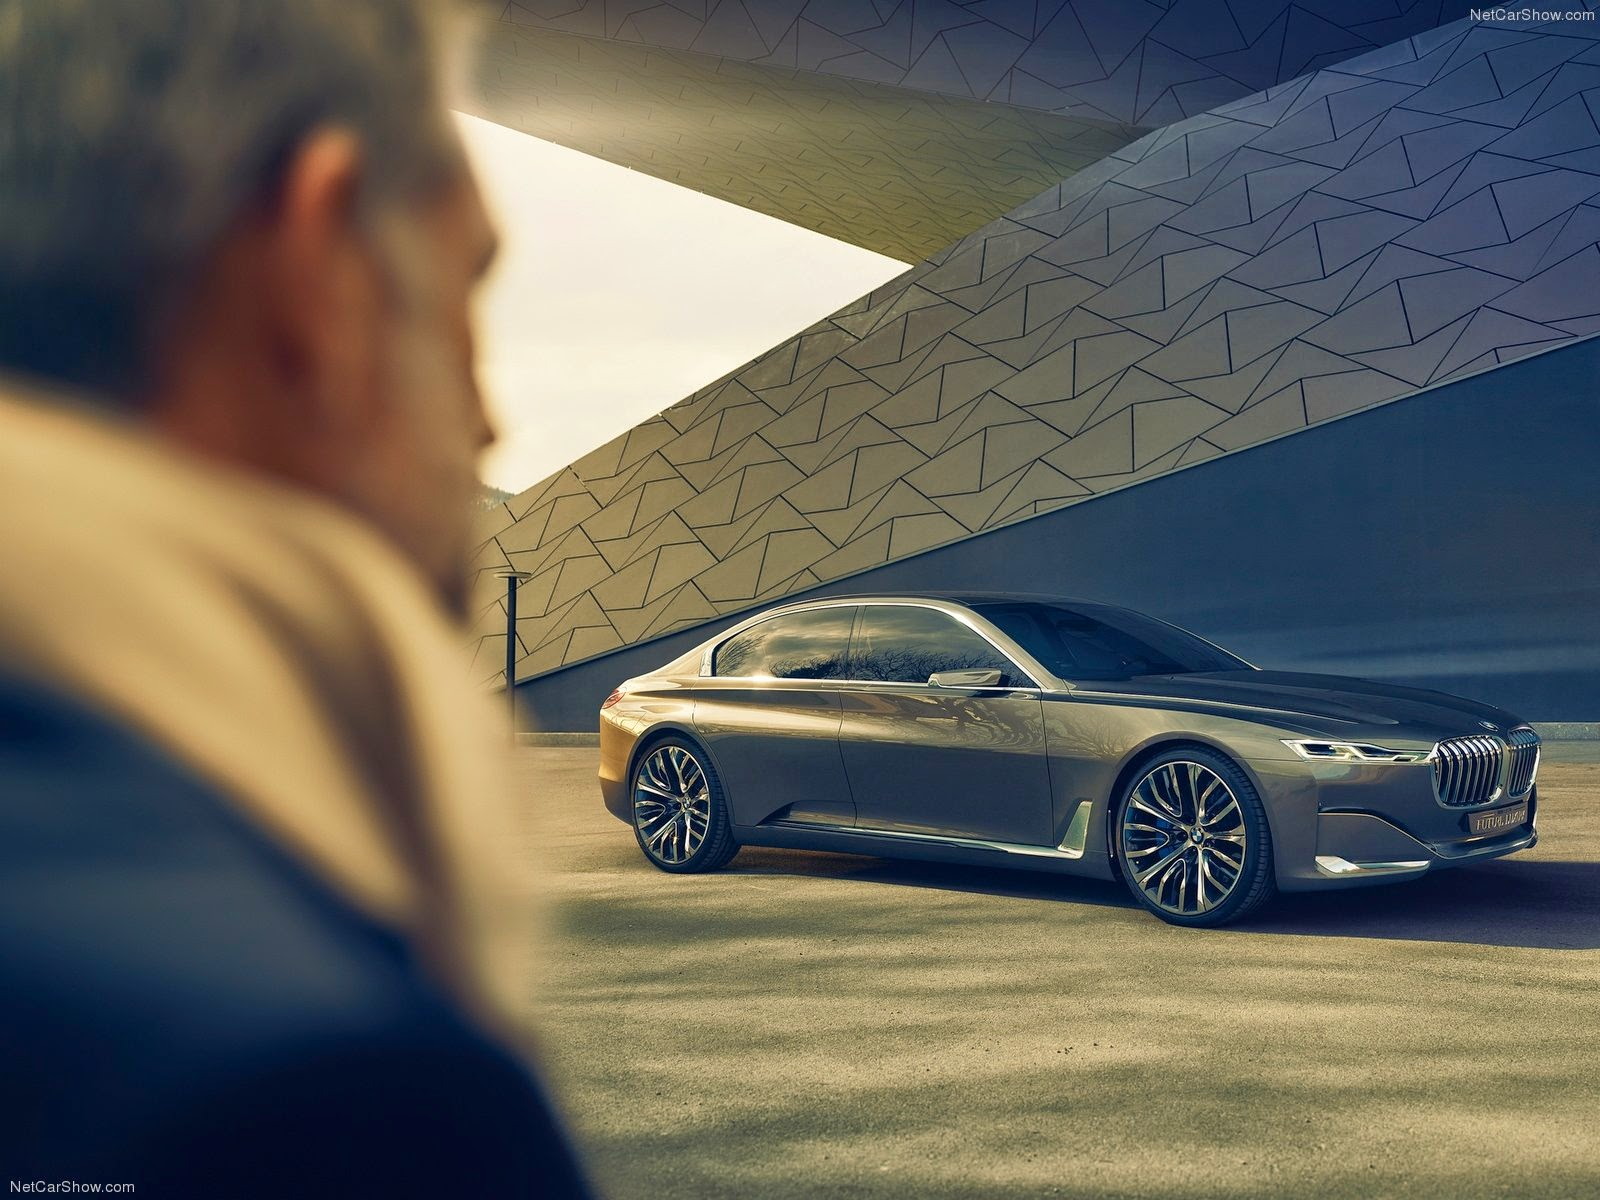 The BMW Vision Future Luxury Concept Has Been Revealed At Beijing Motor Show New Concepts Key Exterior Styling Elements Contemporary Interior